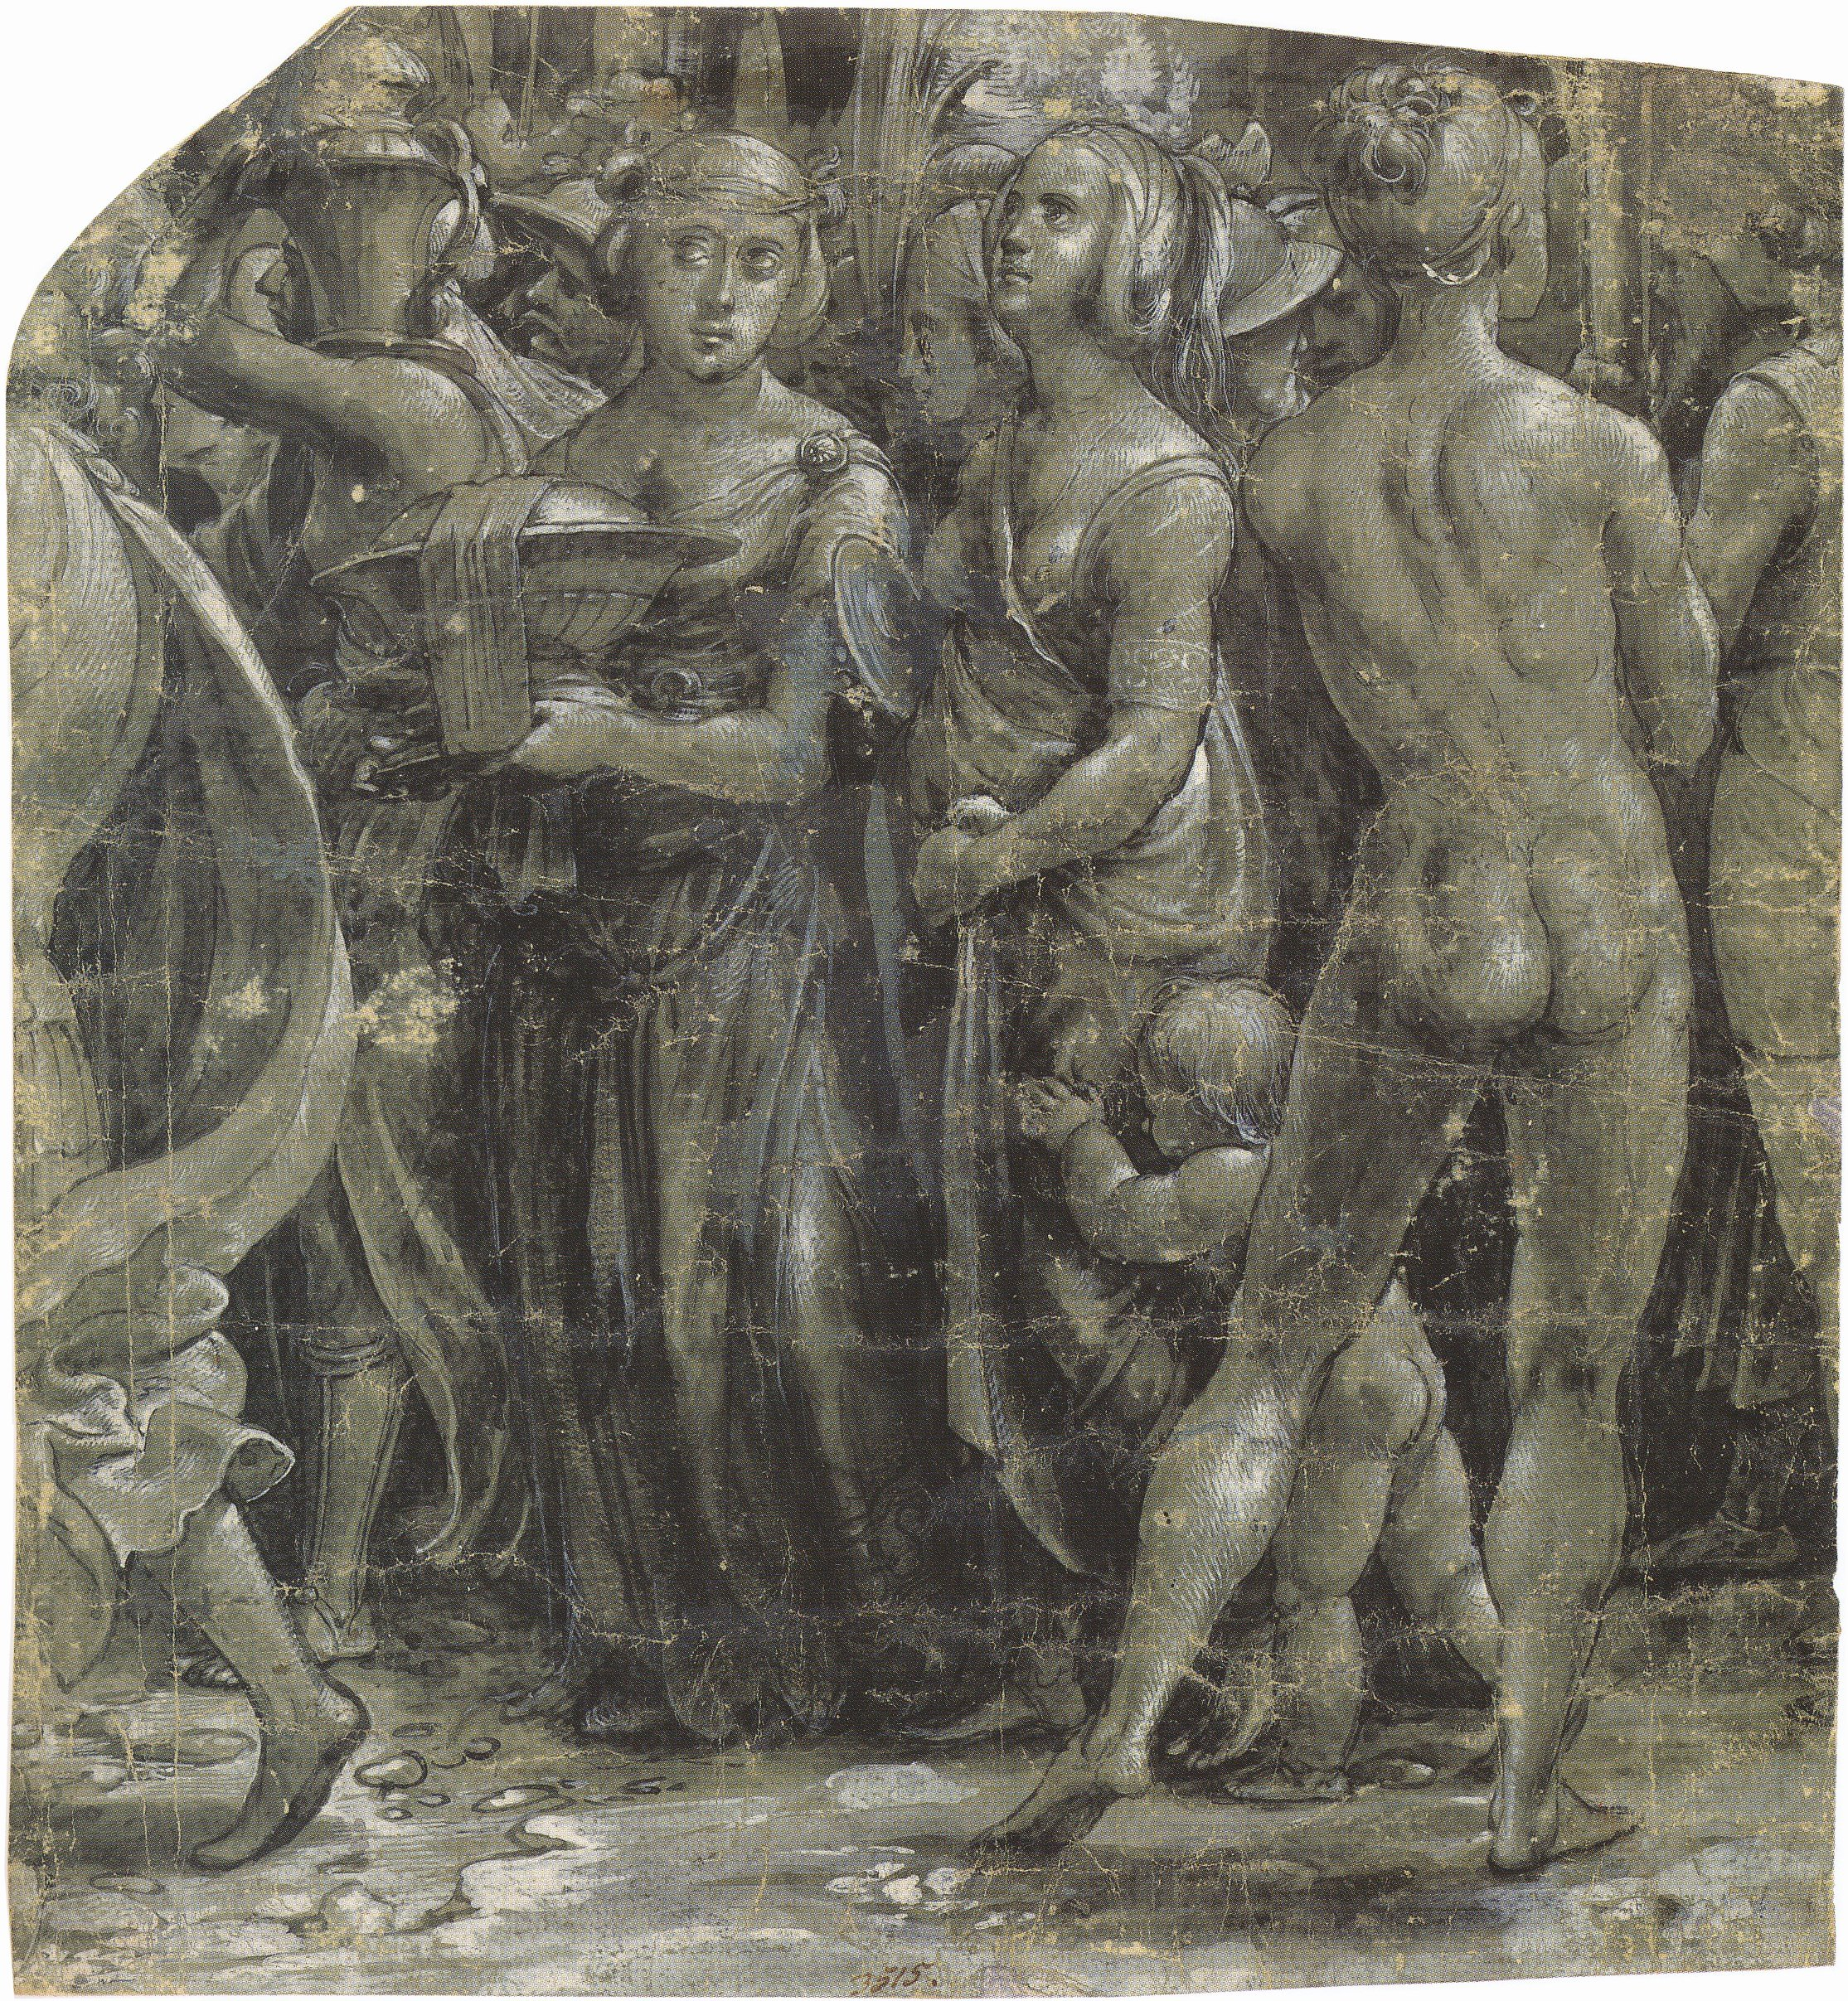 Fragment of a Scene with Classical Figures, c.1520